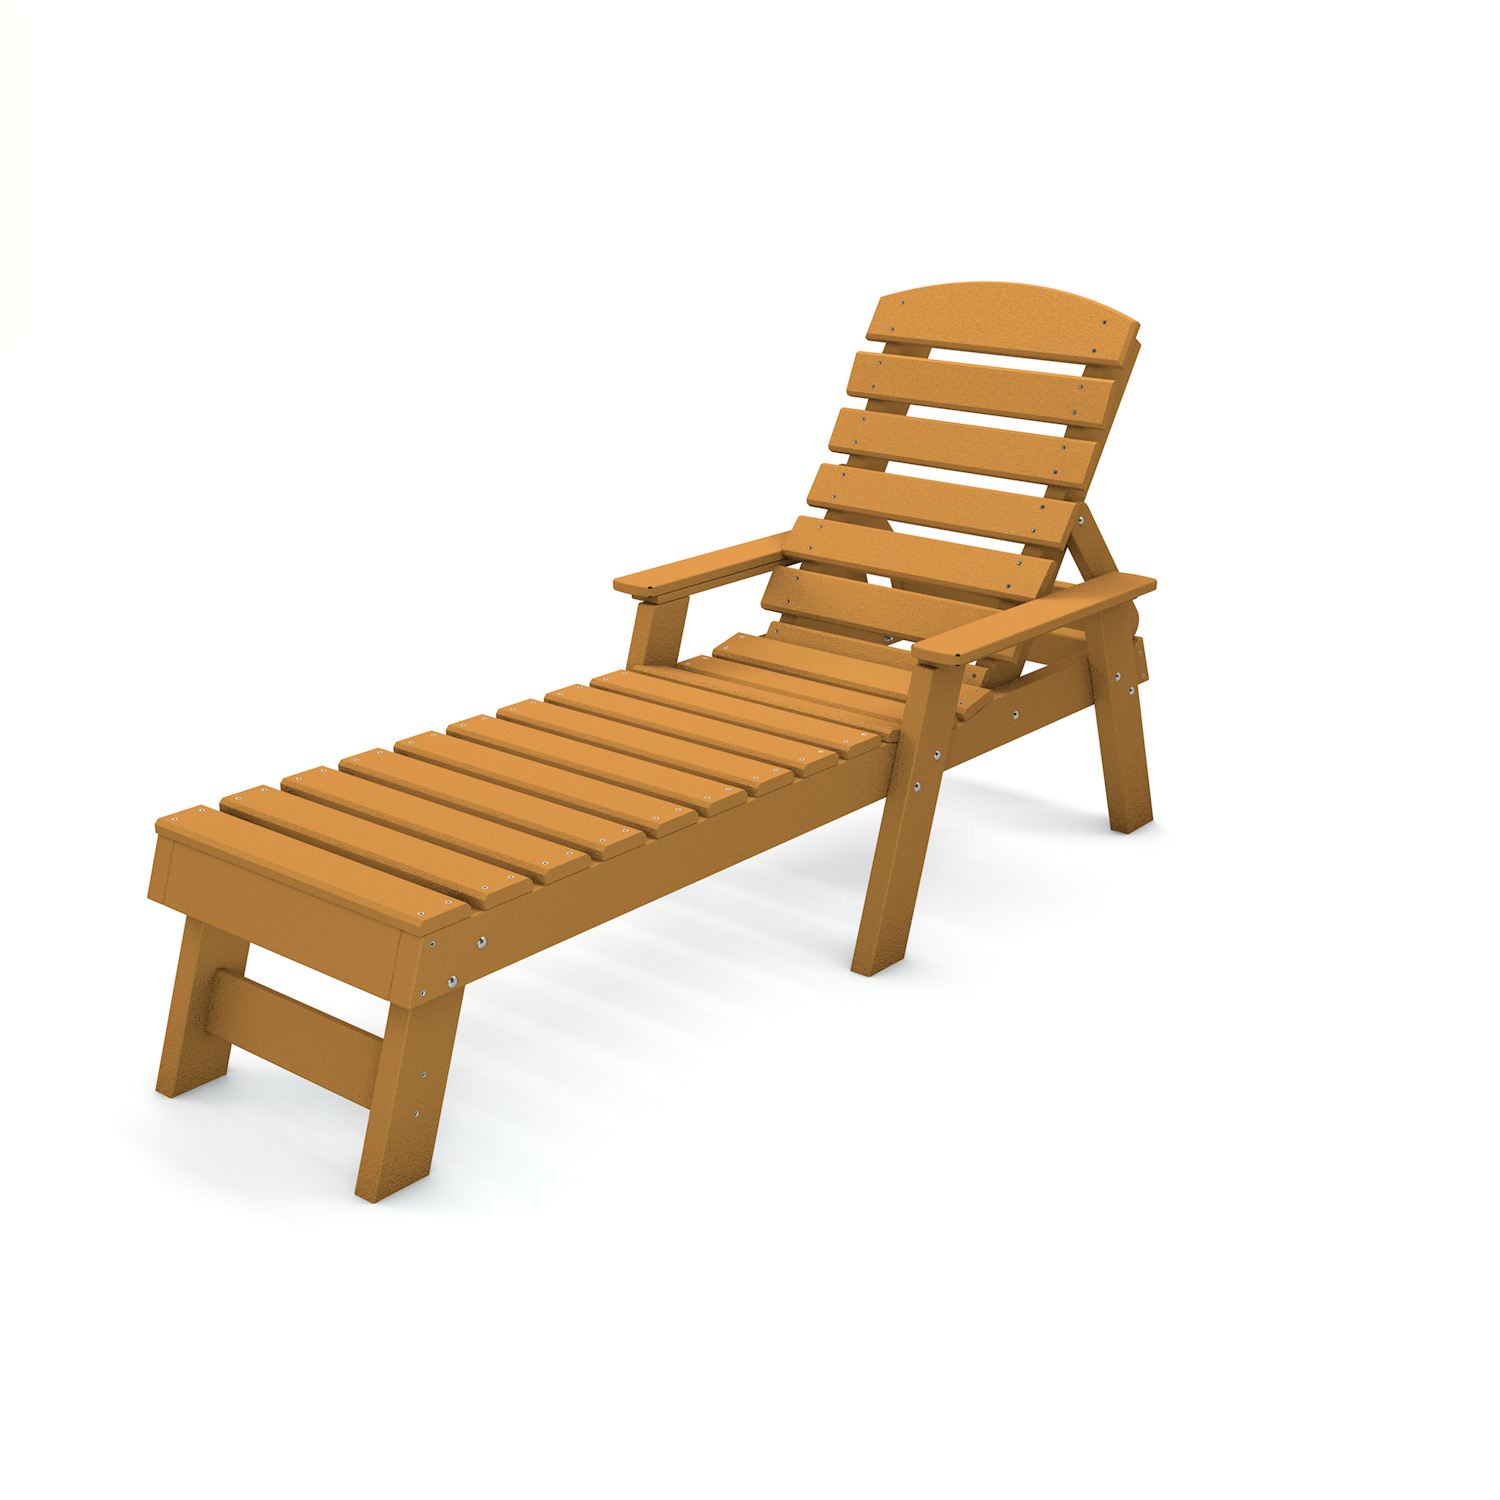 Pensacola Chaise Lounge Chairs